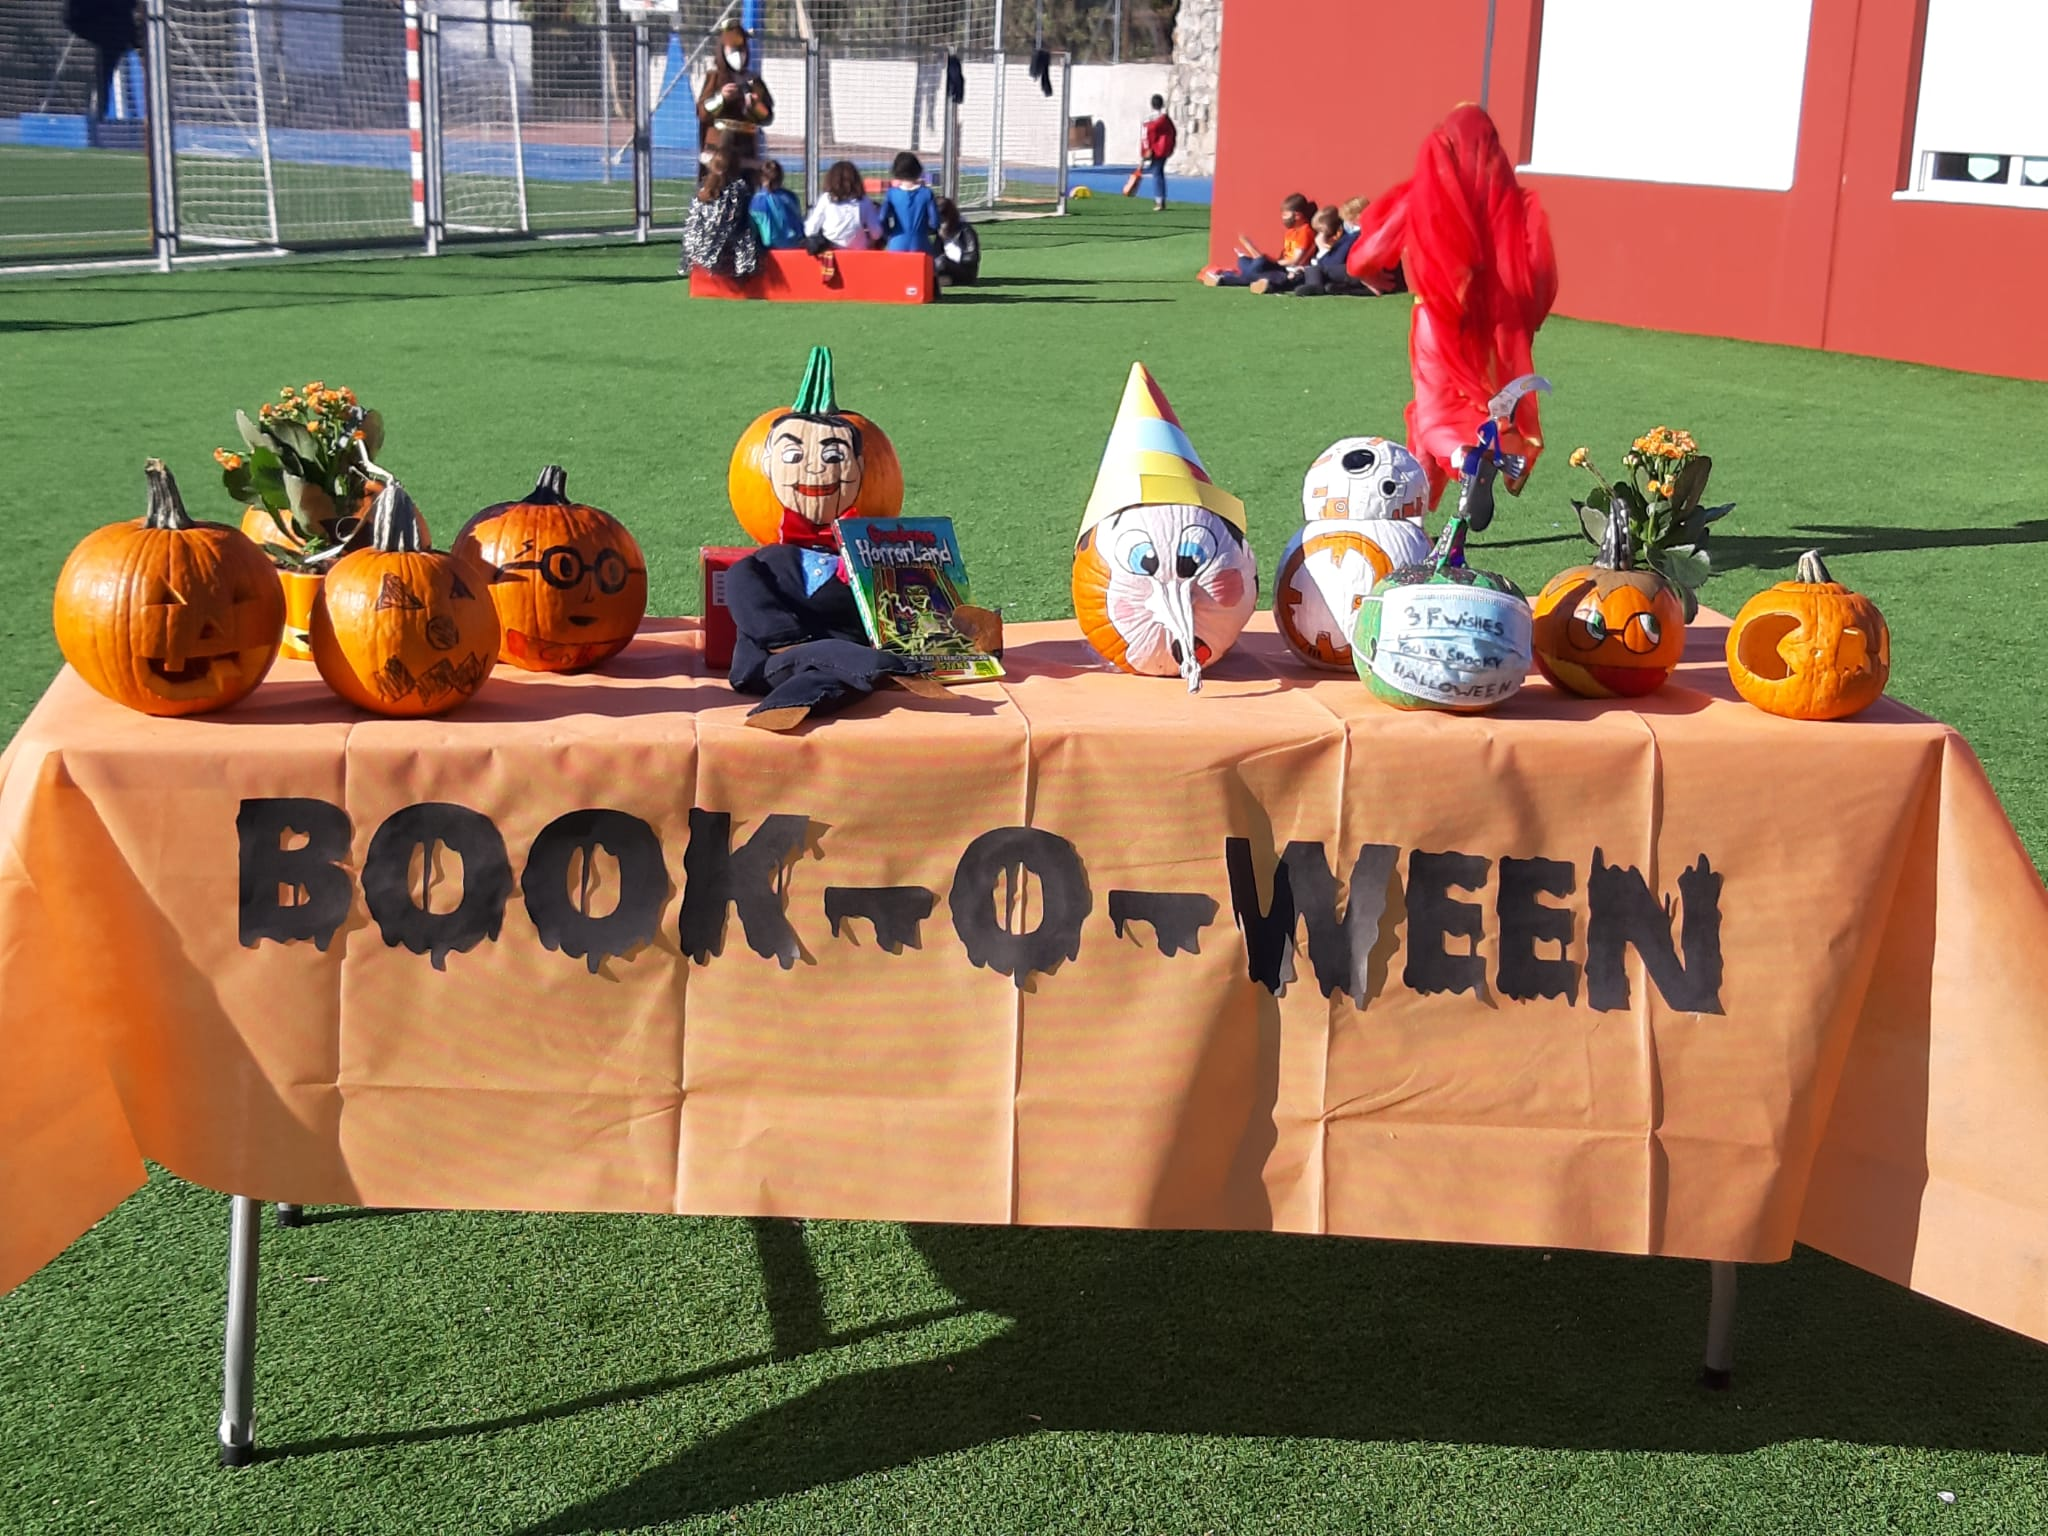 ¡Divertido Book-o-ween en LS!